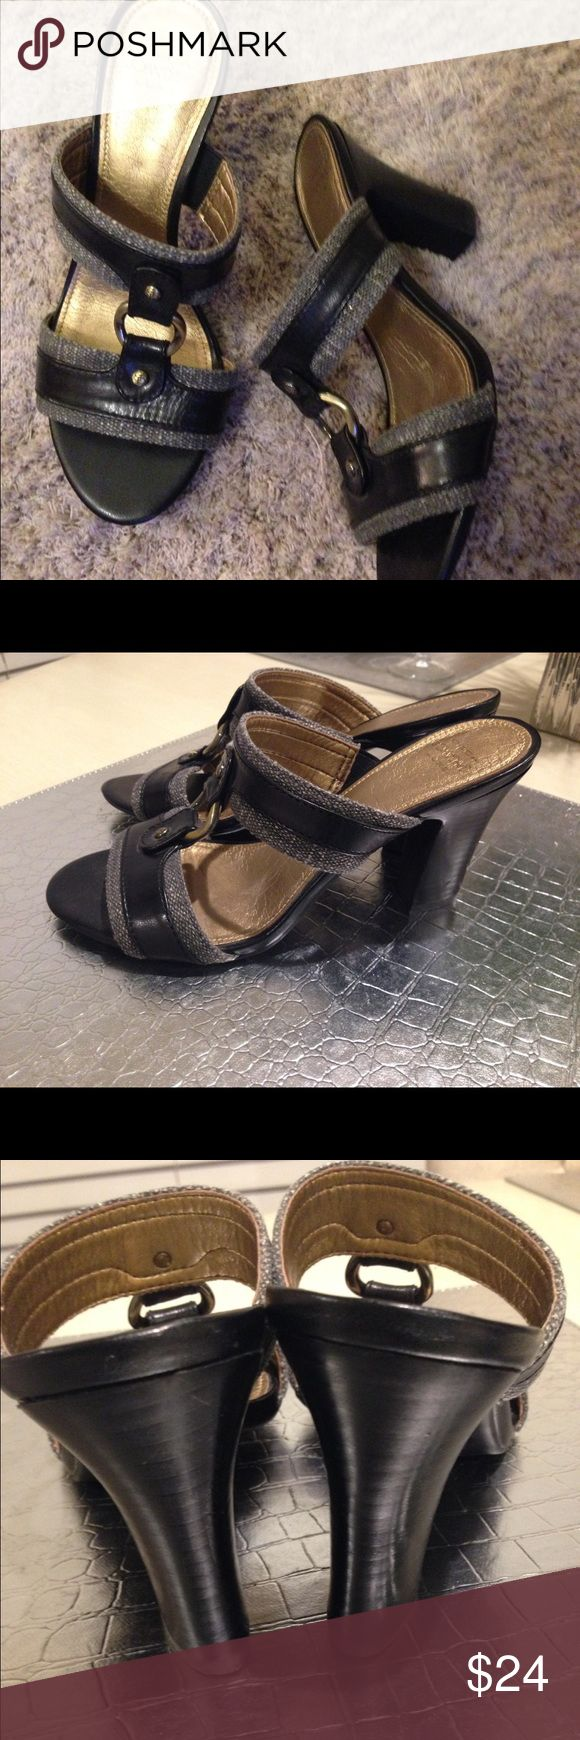 Circa Joan and David Luxe Black Tweed Sandals Chocolate brown leather and tweed with gold embellishments, wooden heel, size 6, great condition Joan & David Shoes Sandals